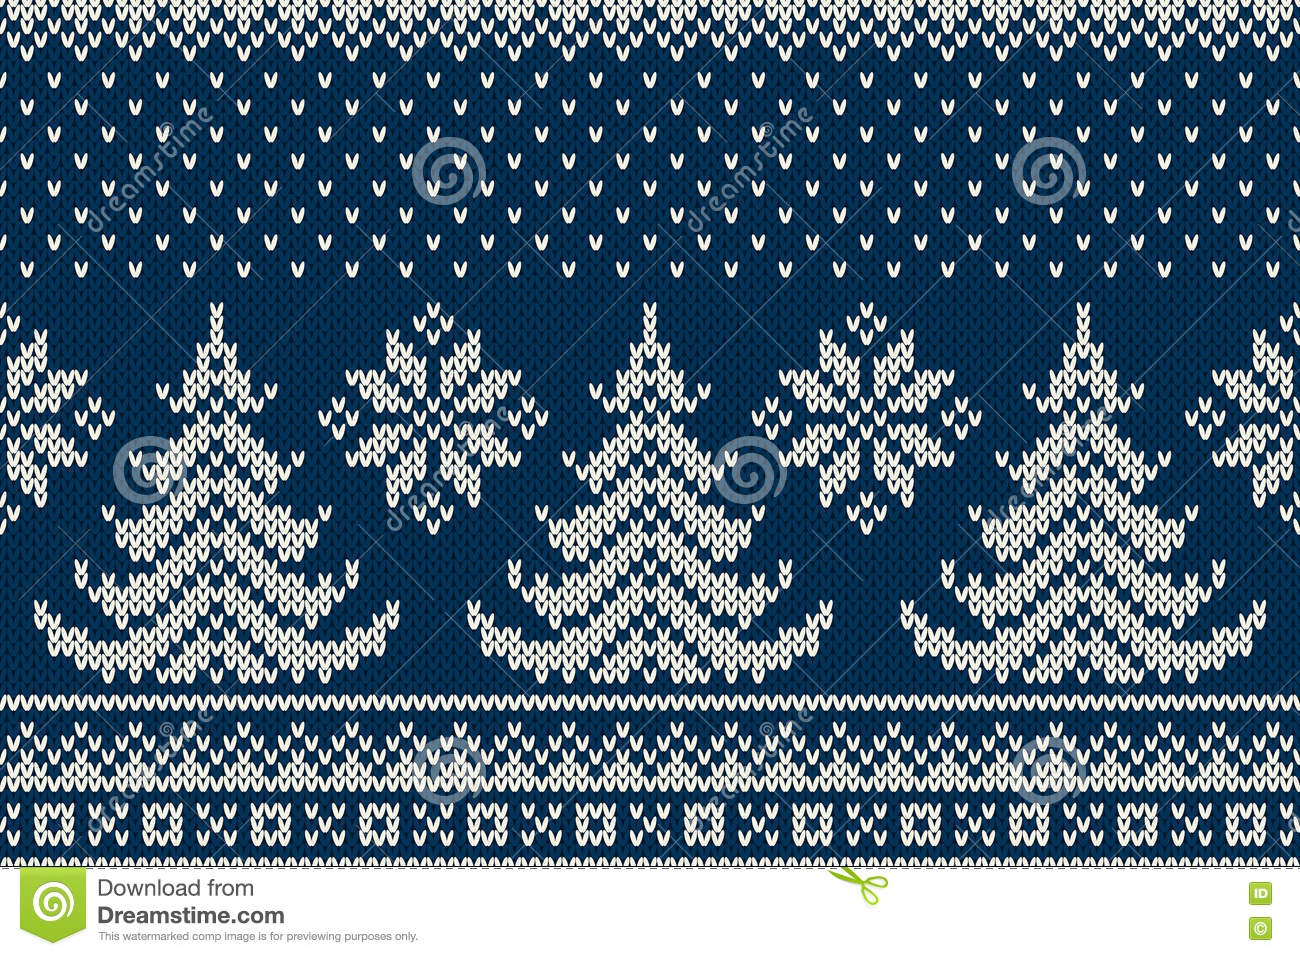 Snowflake Jumper Knitting Pattern : Winter Holiday Seamless Knitting Pattern With A Christmas Trees And Snowflake...